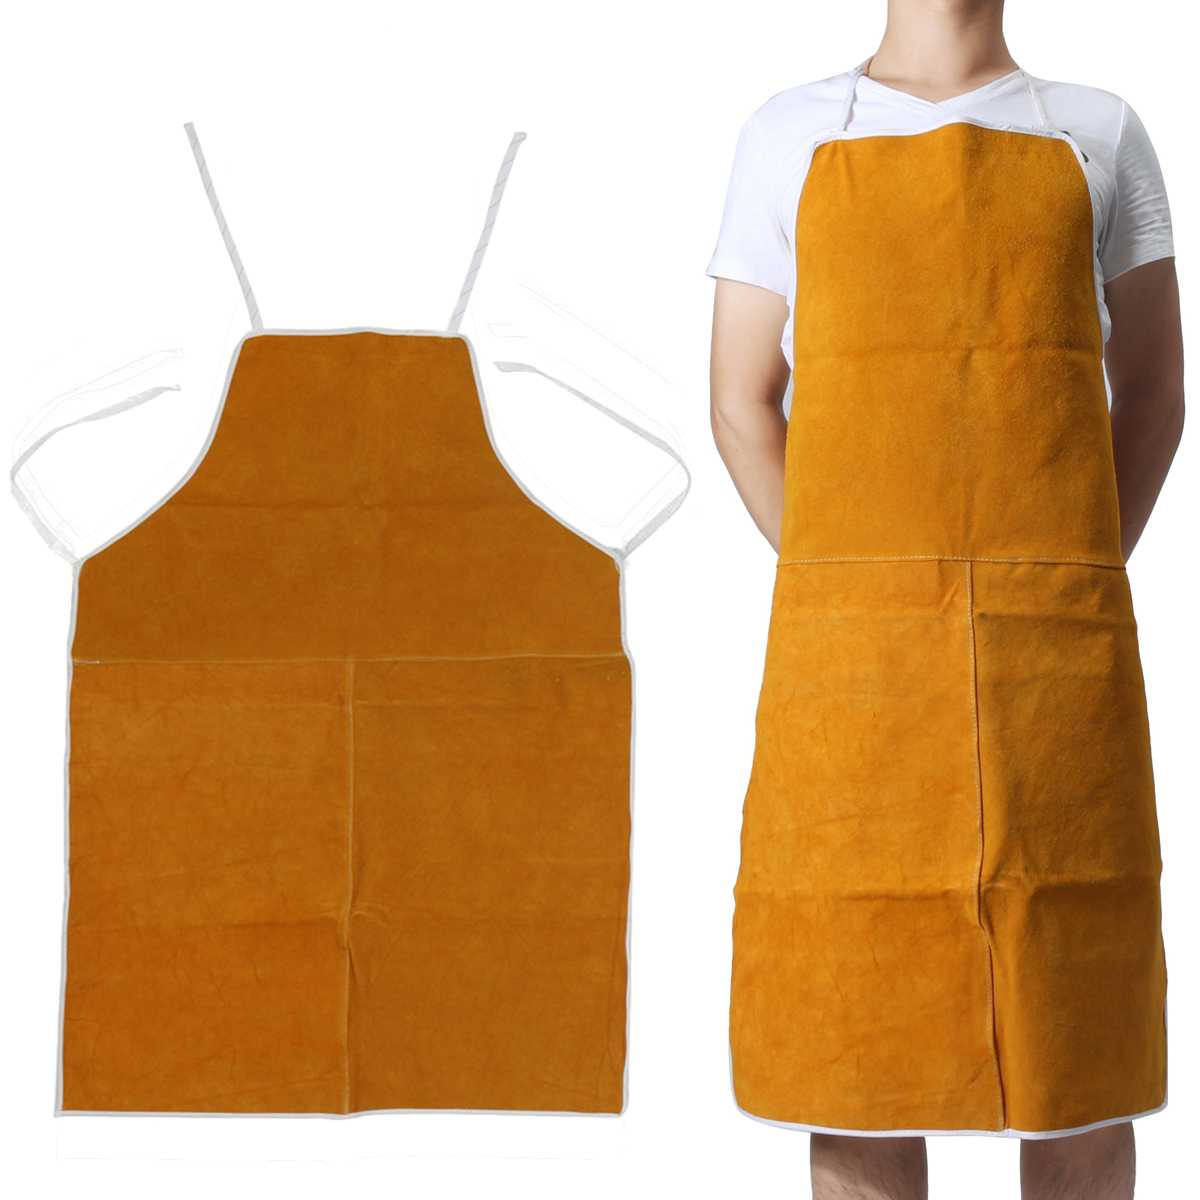 Free Shipping Cow Leather Aprons Welding Heat Insulation Protection Welders Blacksmith 93x64cm Safety Clothing